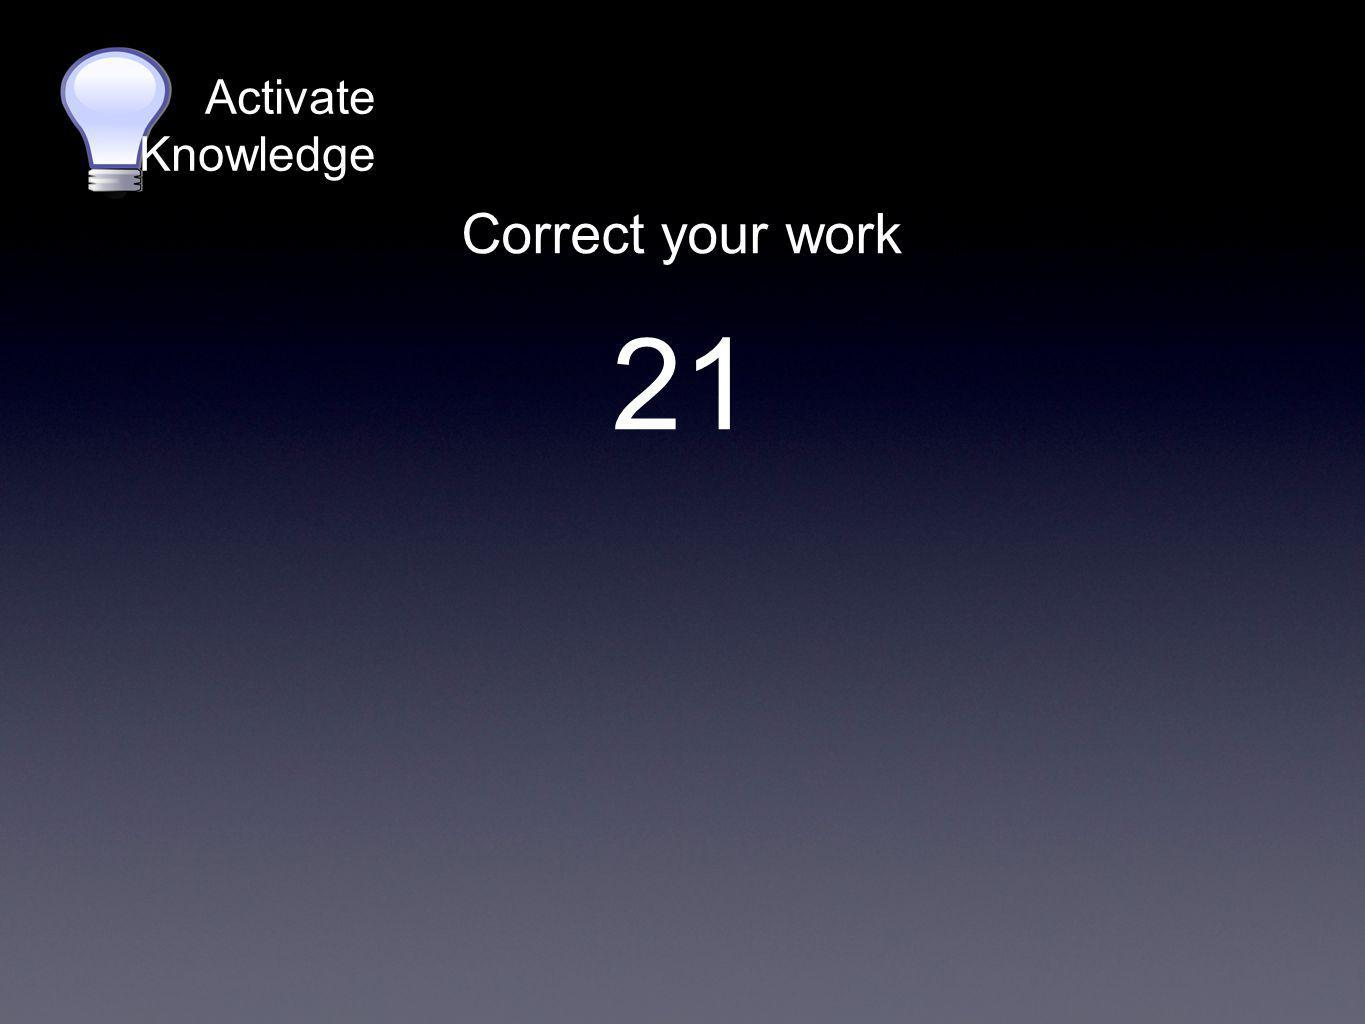 Activate Knowledge 891 ÷ 96 Round the divisor to the nearest 10